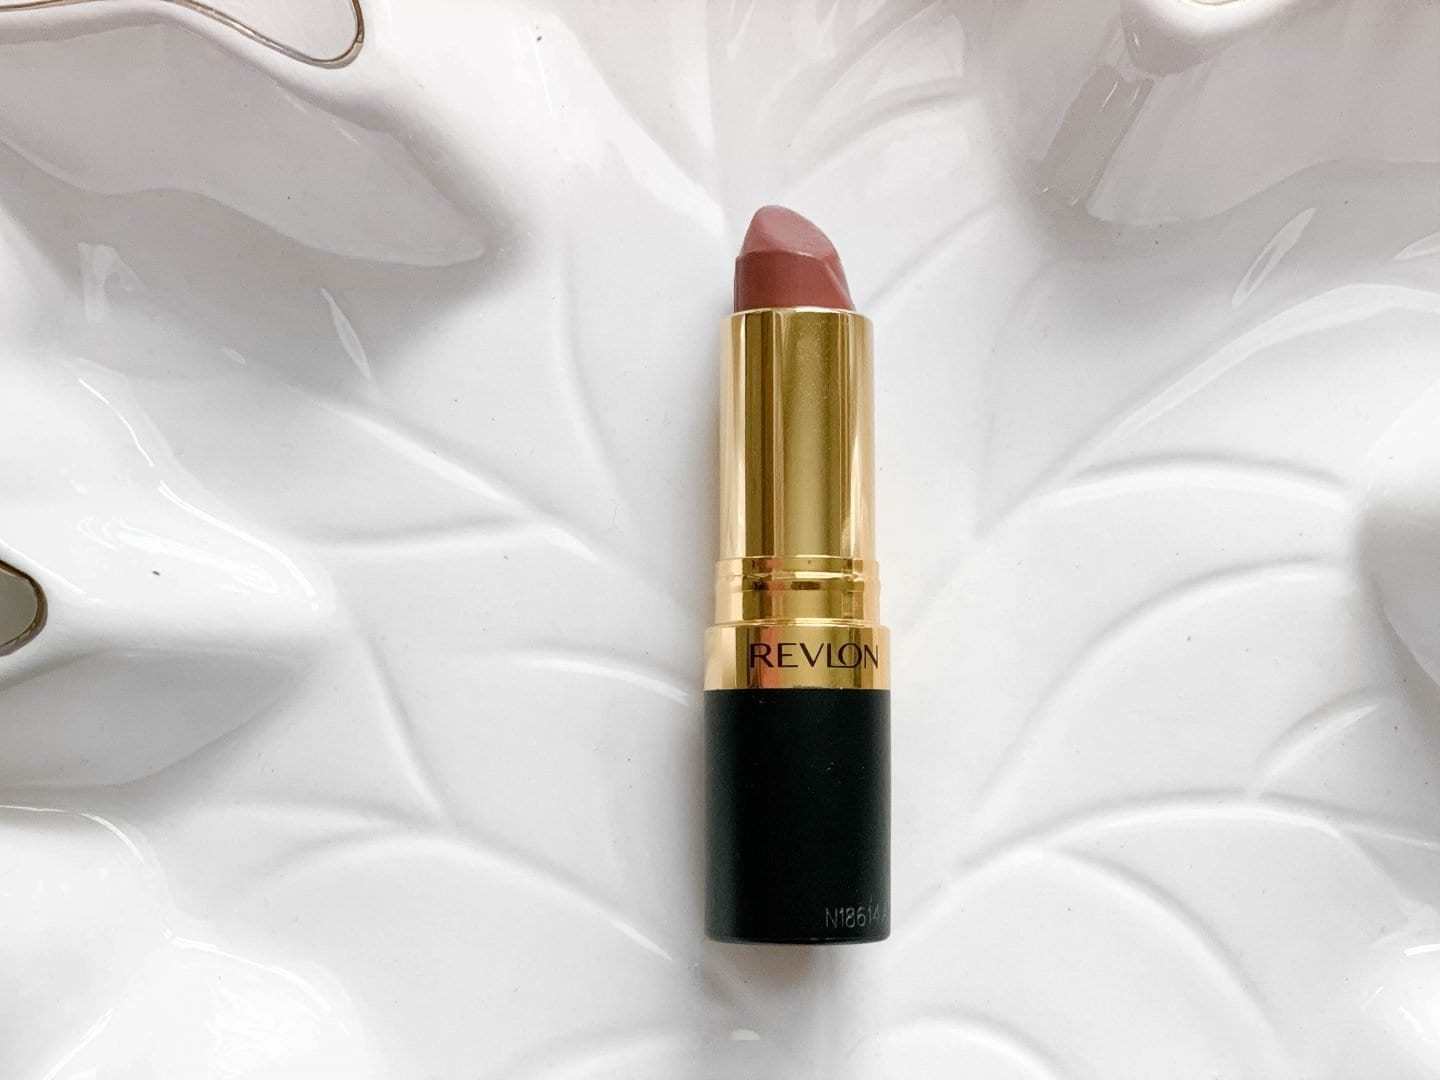 My Current Top 6 Lipsticks This Fall